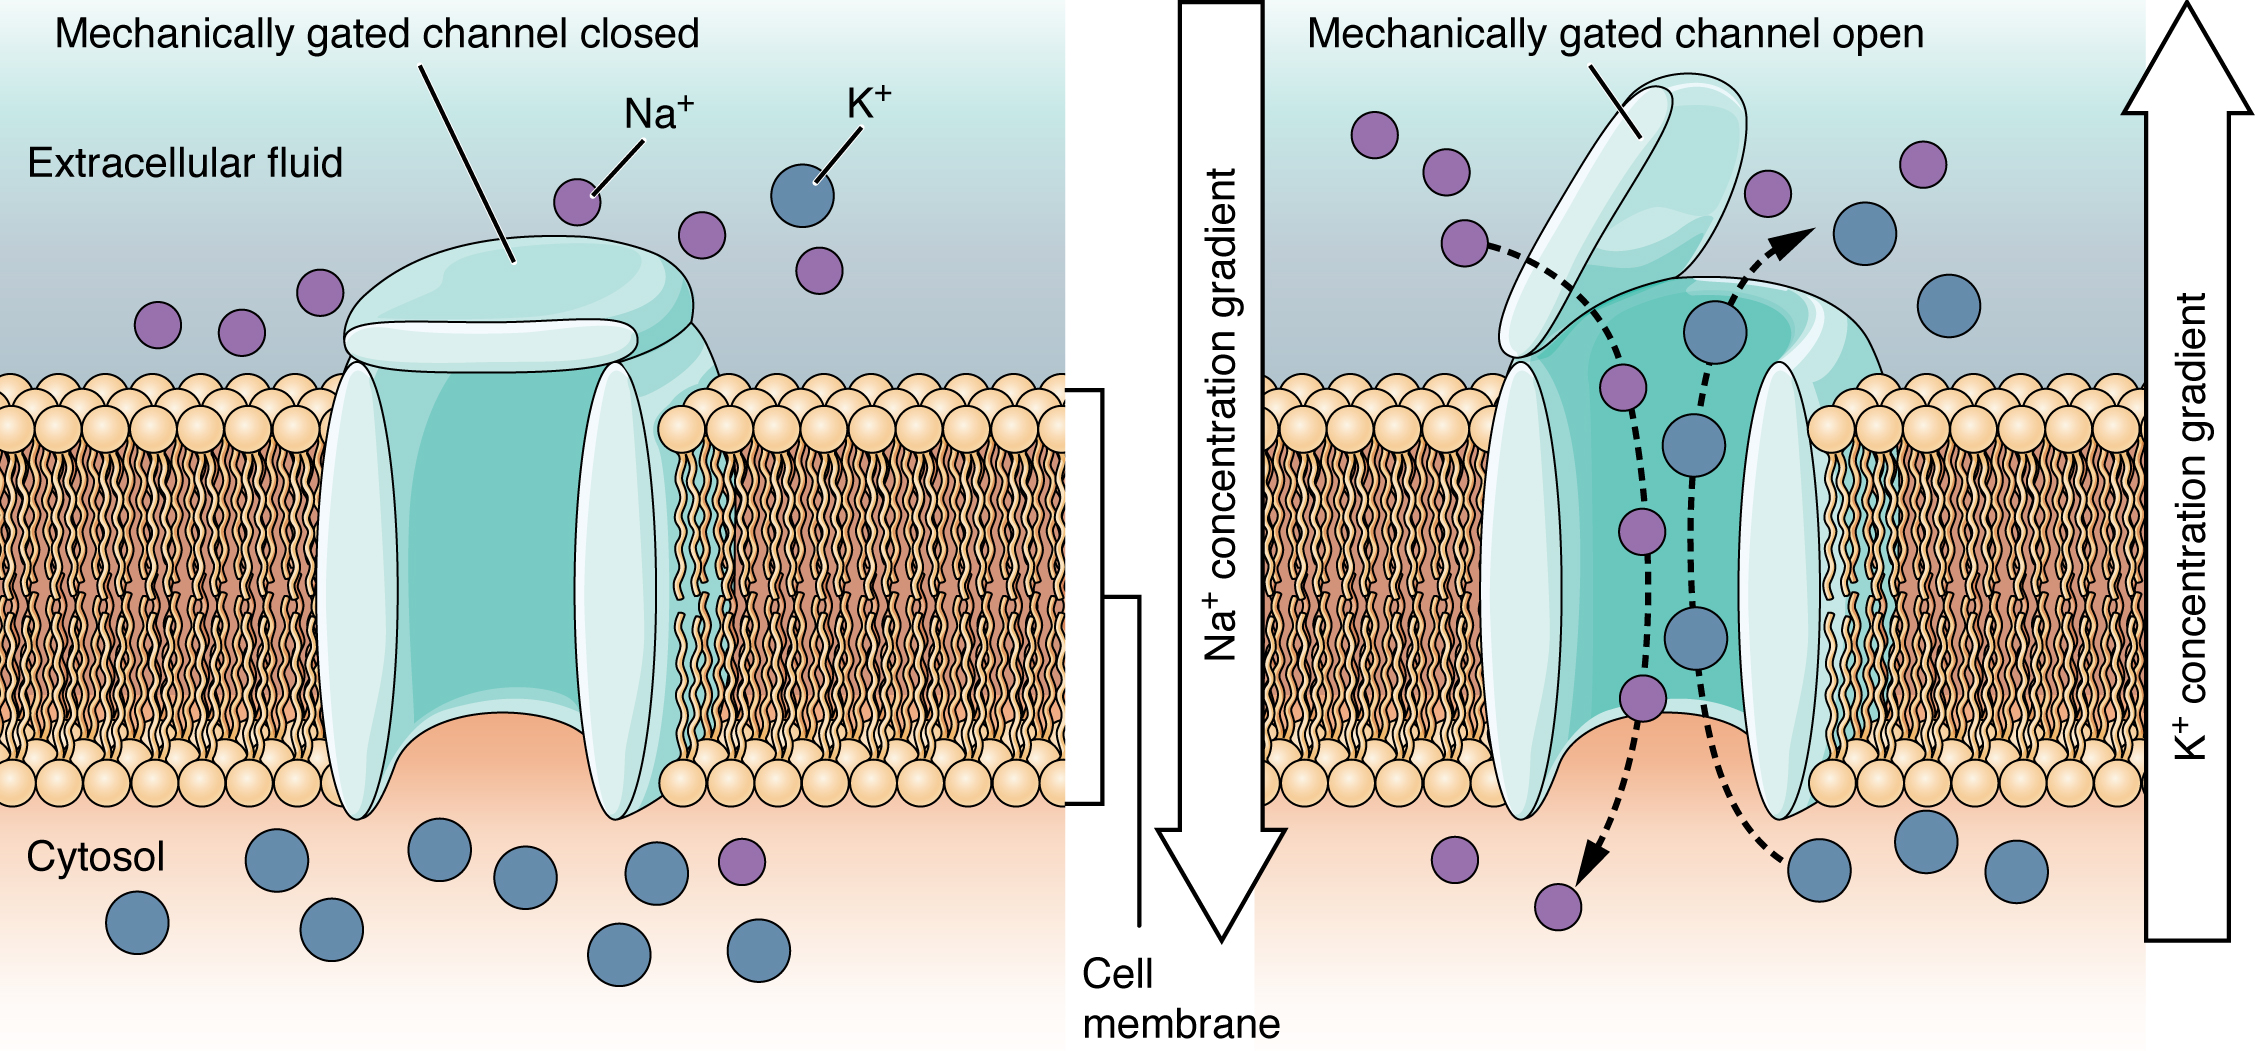 These two diagrams each show a channel protein embedded in the cell membrane. In the left diagram, there are a large number of sodium ions in the extracellular fluid, but only a few sodium ions in the cytosol. There is a large number of calcium ions in the cytosol but only a few calcium ions in the extracellular fluid. In this diagram, the channel is closed, as the extracellular side has a lid, somewhat resembling that on a trash can, that is closed over the channel opening. In the right diagram, the mechanically gated channel is open.  This allows the sodium ions to flow from the extracellular fluid into the cell, down their concentration gradient. At the same time, the calcium ions are moving from the cytosol into the extracellular fluid, down their concentration gradient.